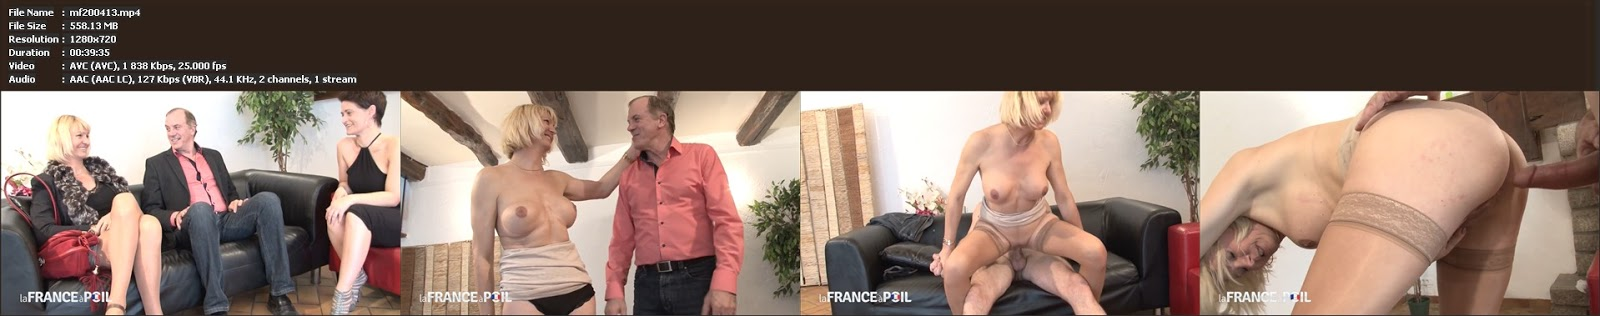 anal franch archive matur